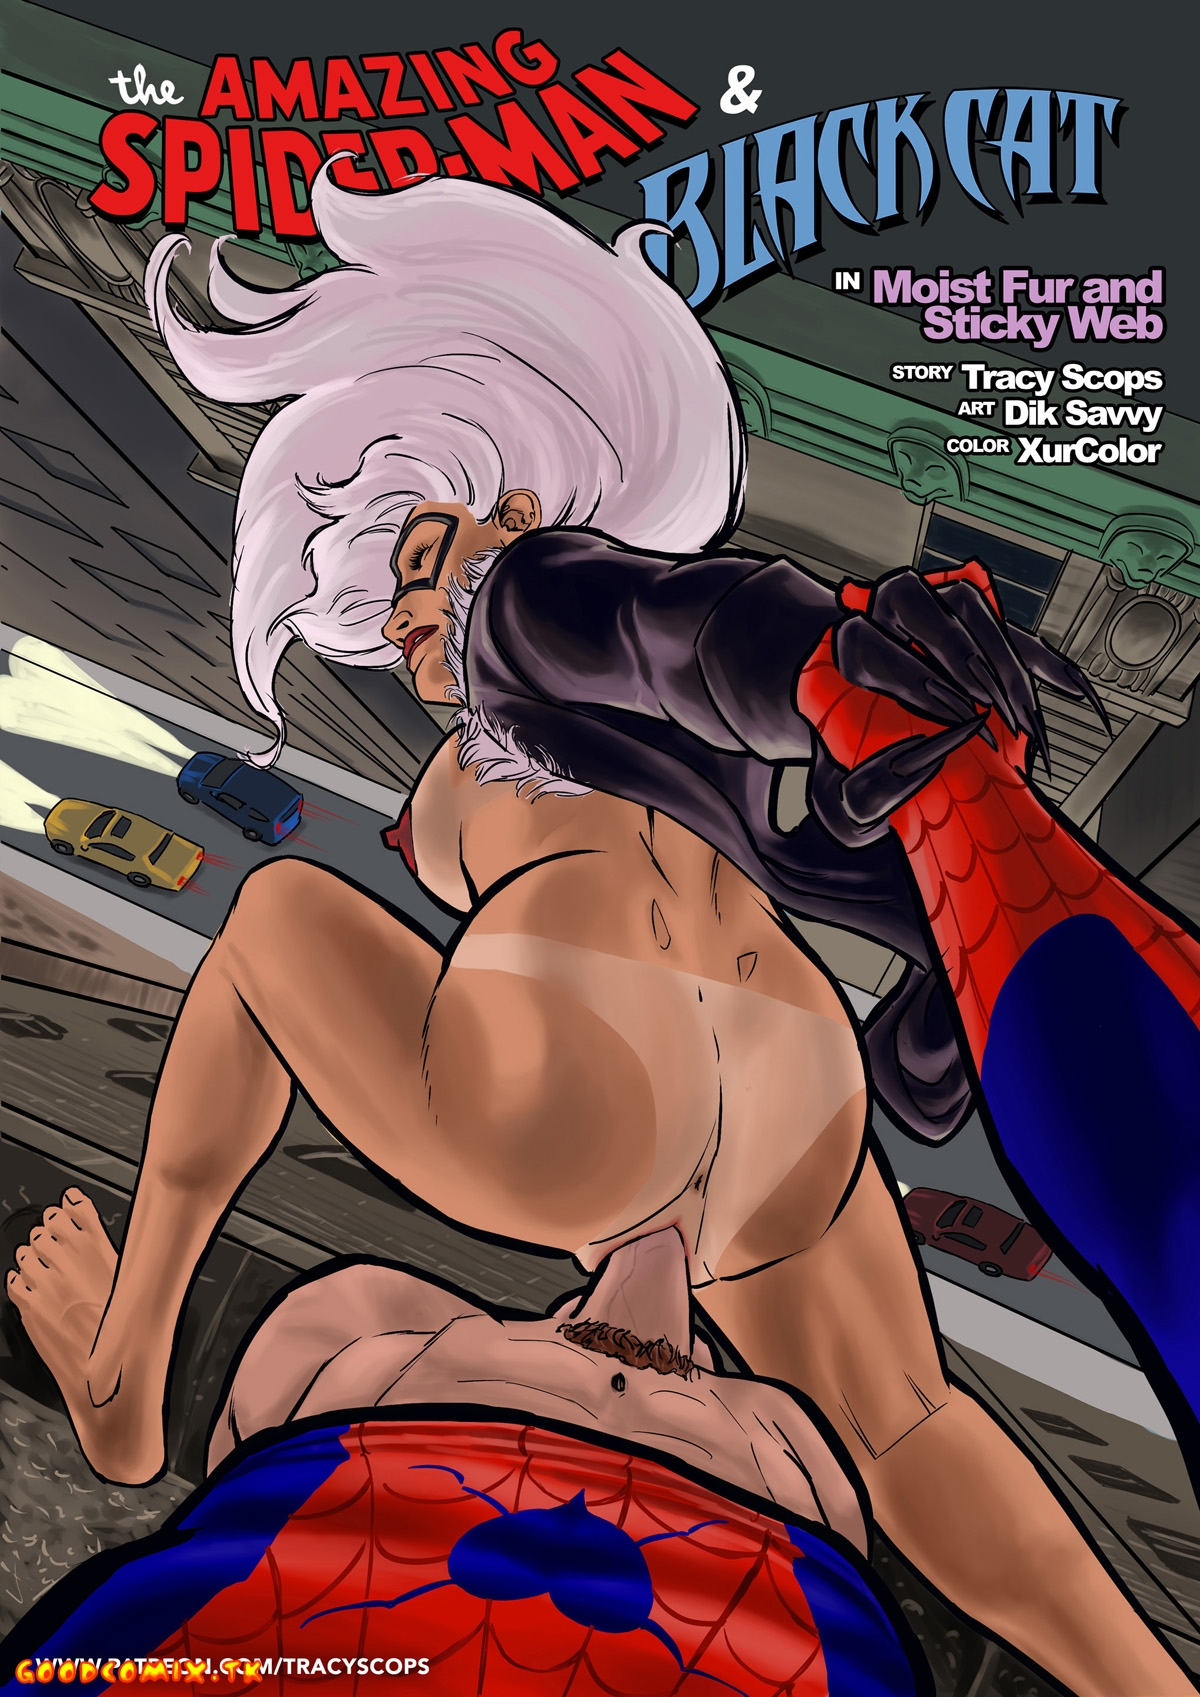 Goodcomix.tk Spider-Man - [Tracy Scops] - Wetfur and Stickyweb